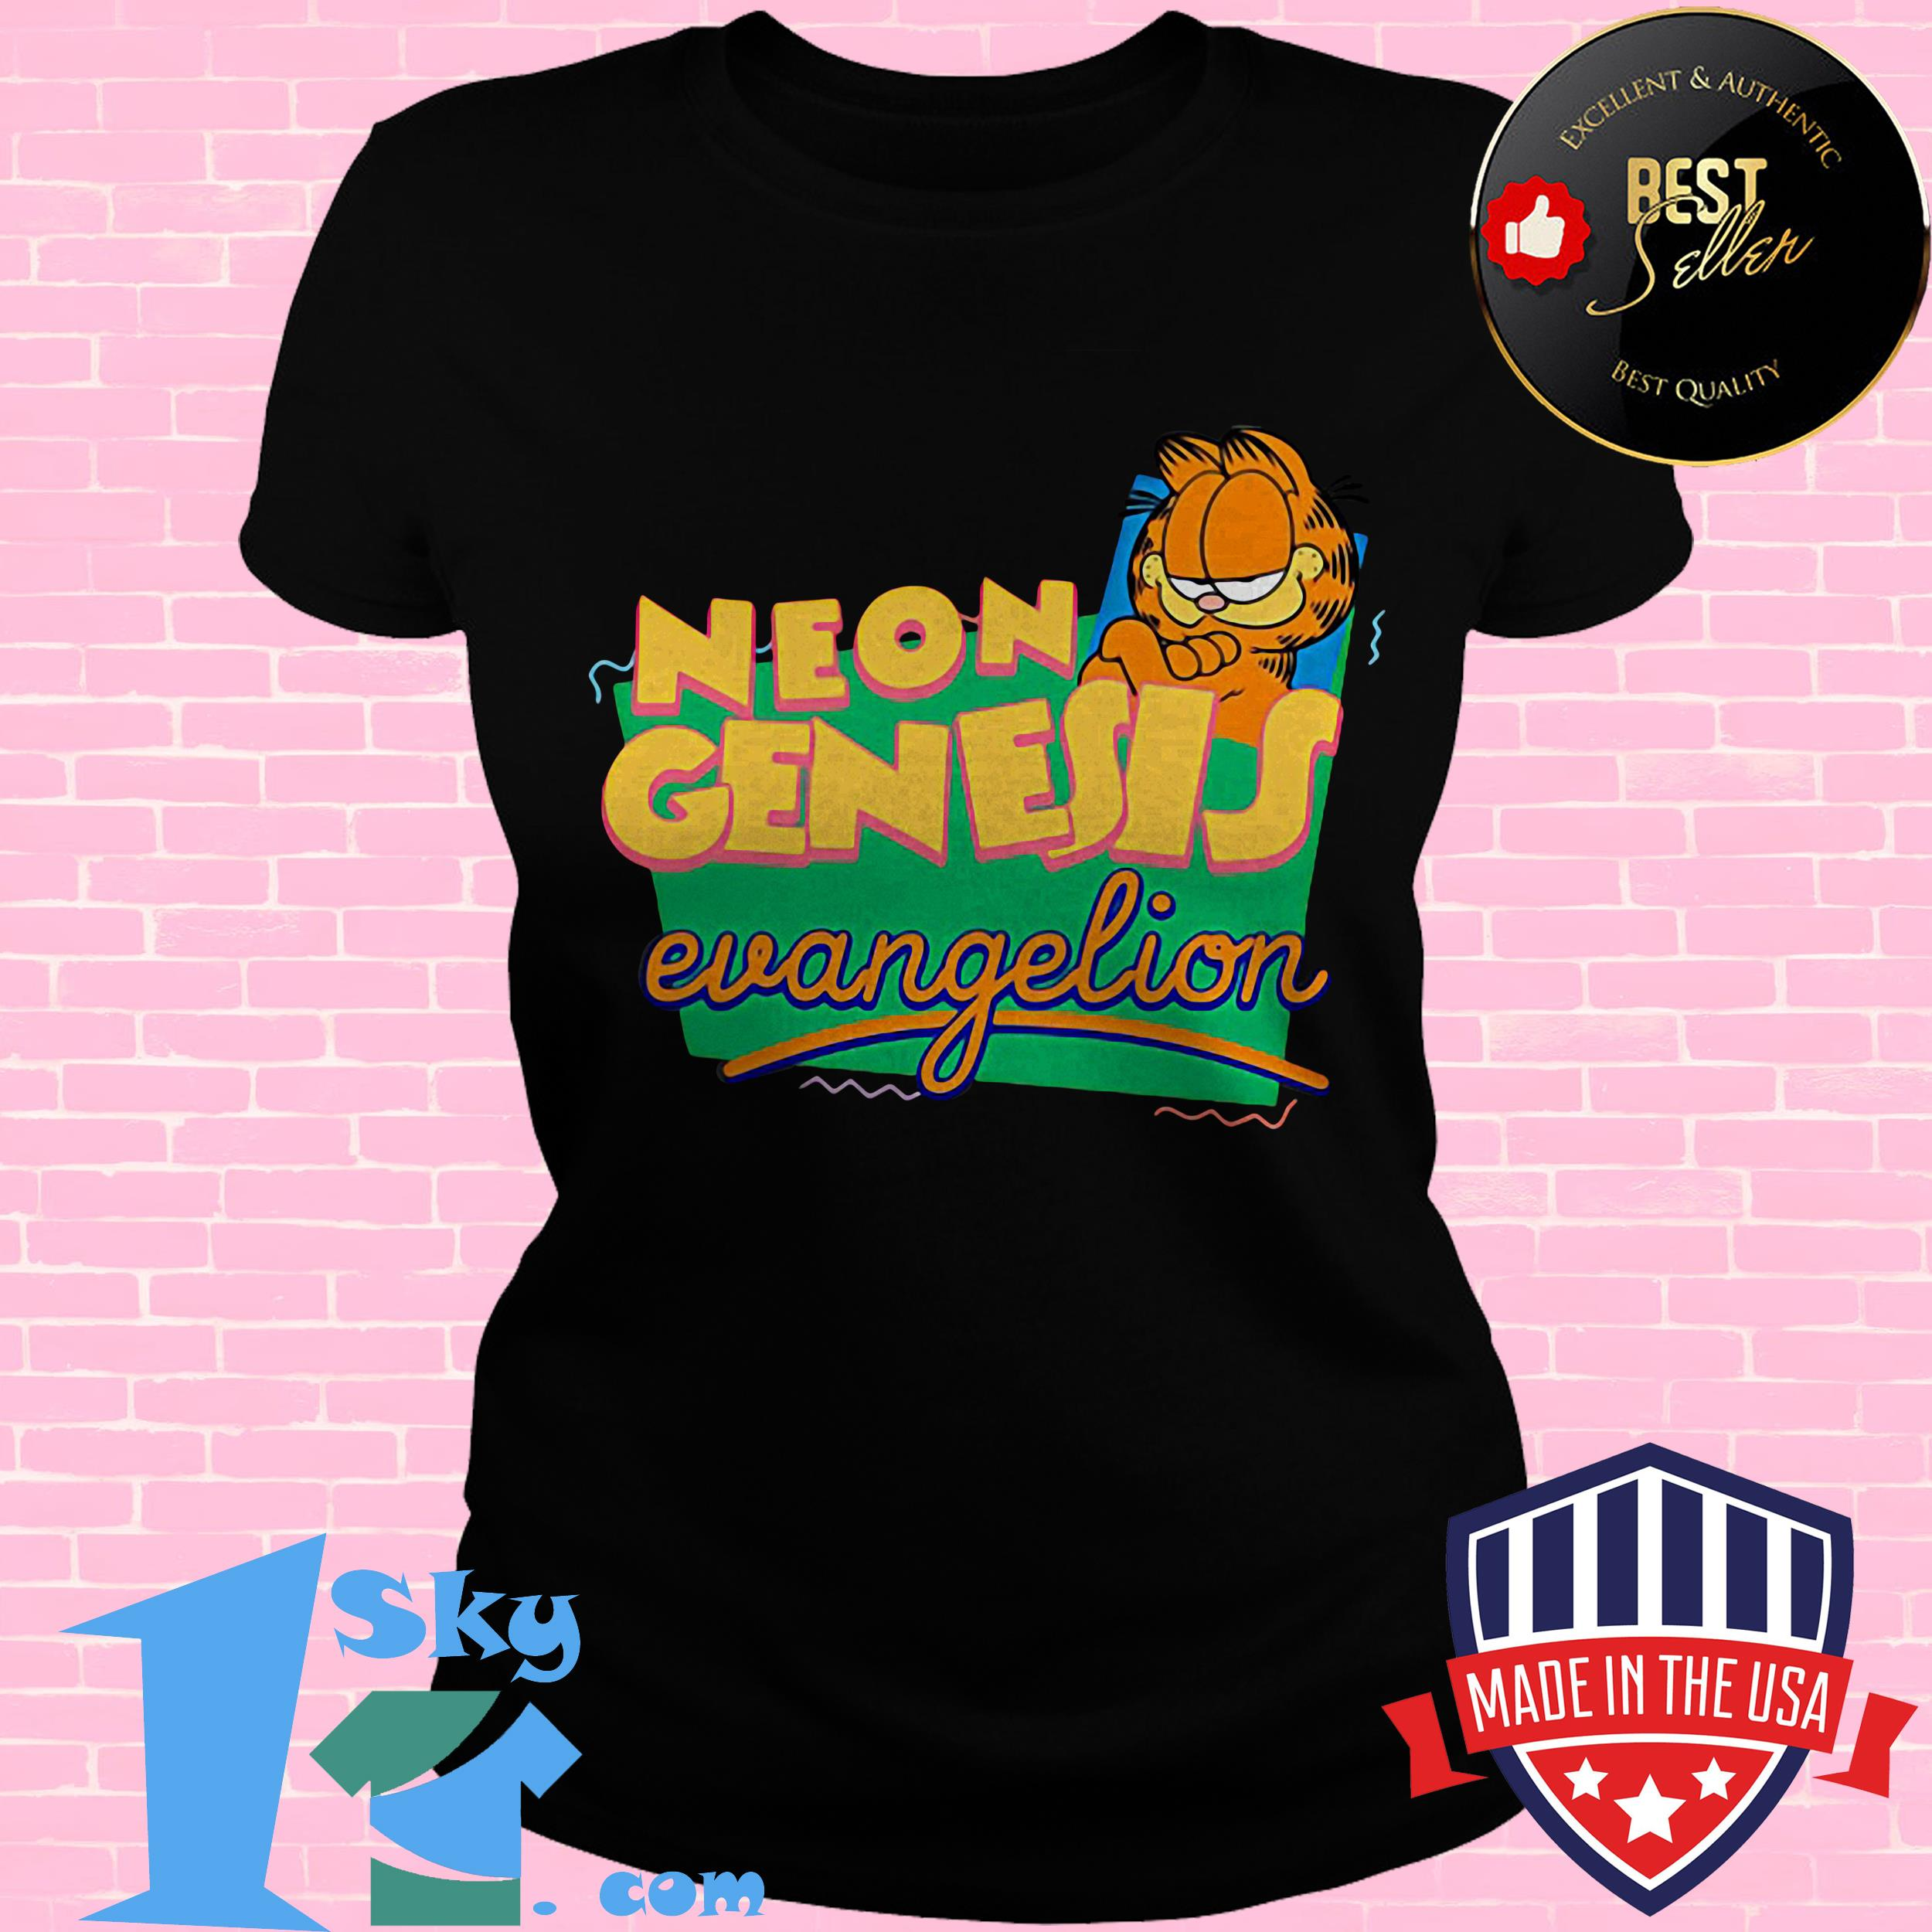 official neon genesis evangelion ladies tee - Official Neon Genesis Evangelion Shirt